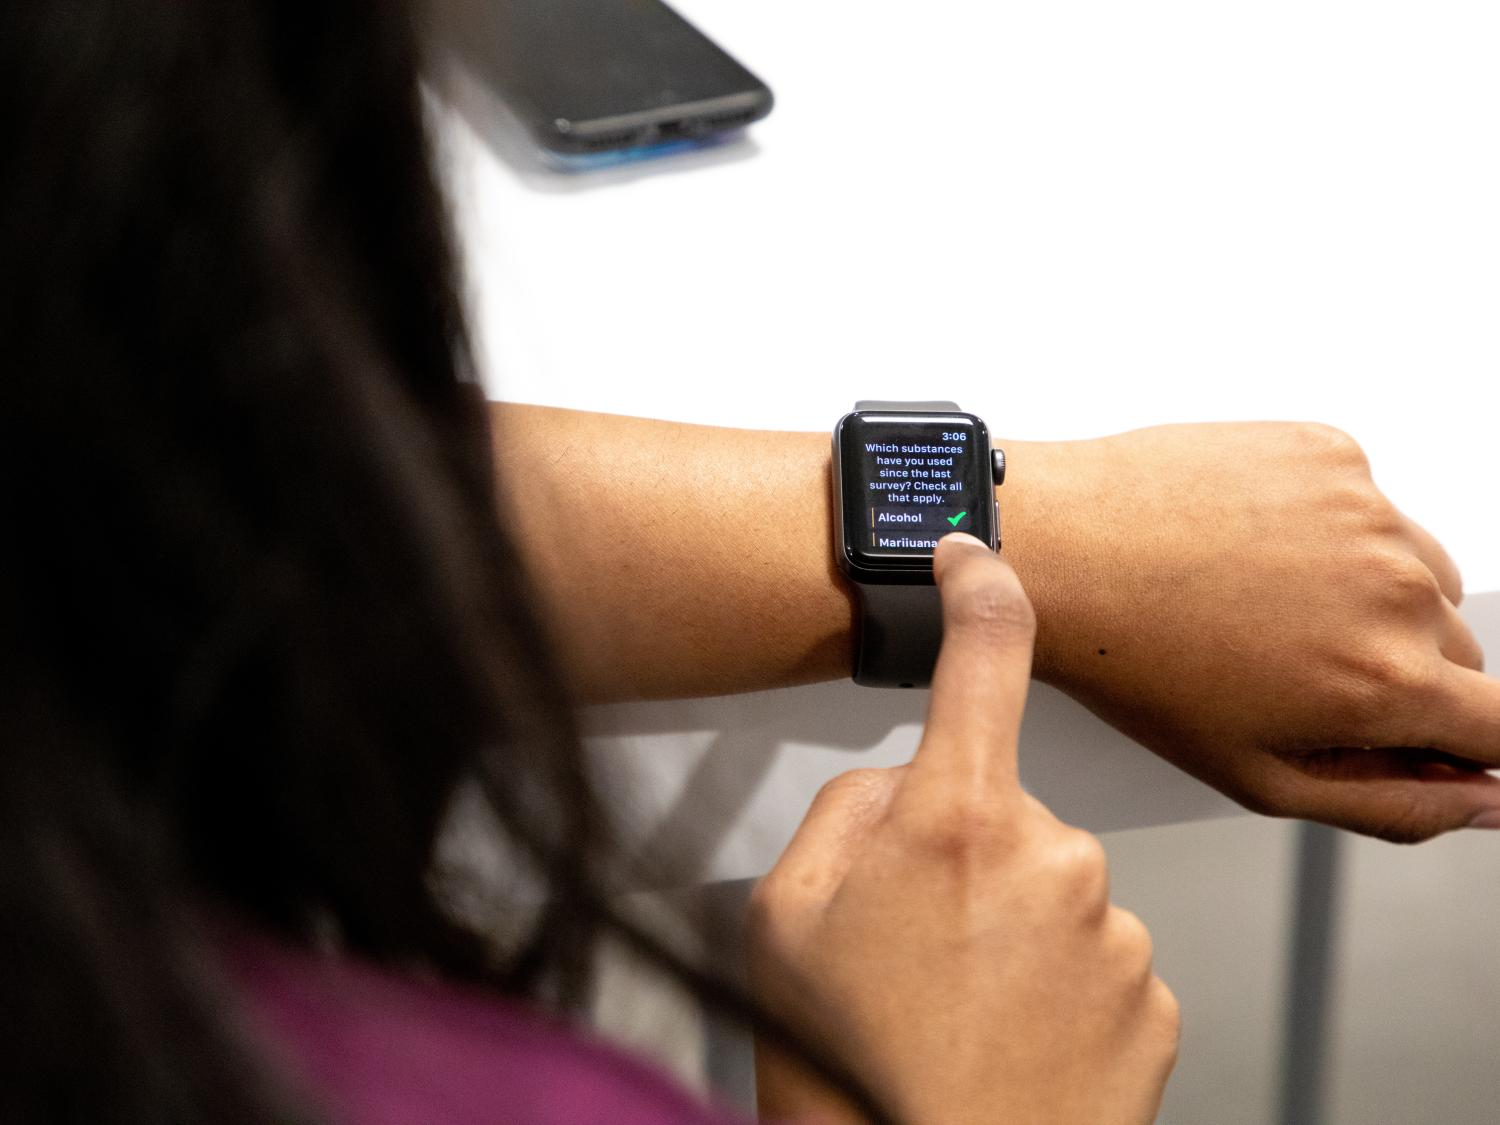 Apple Watch substance co-use